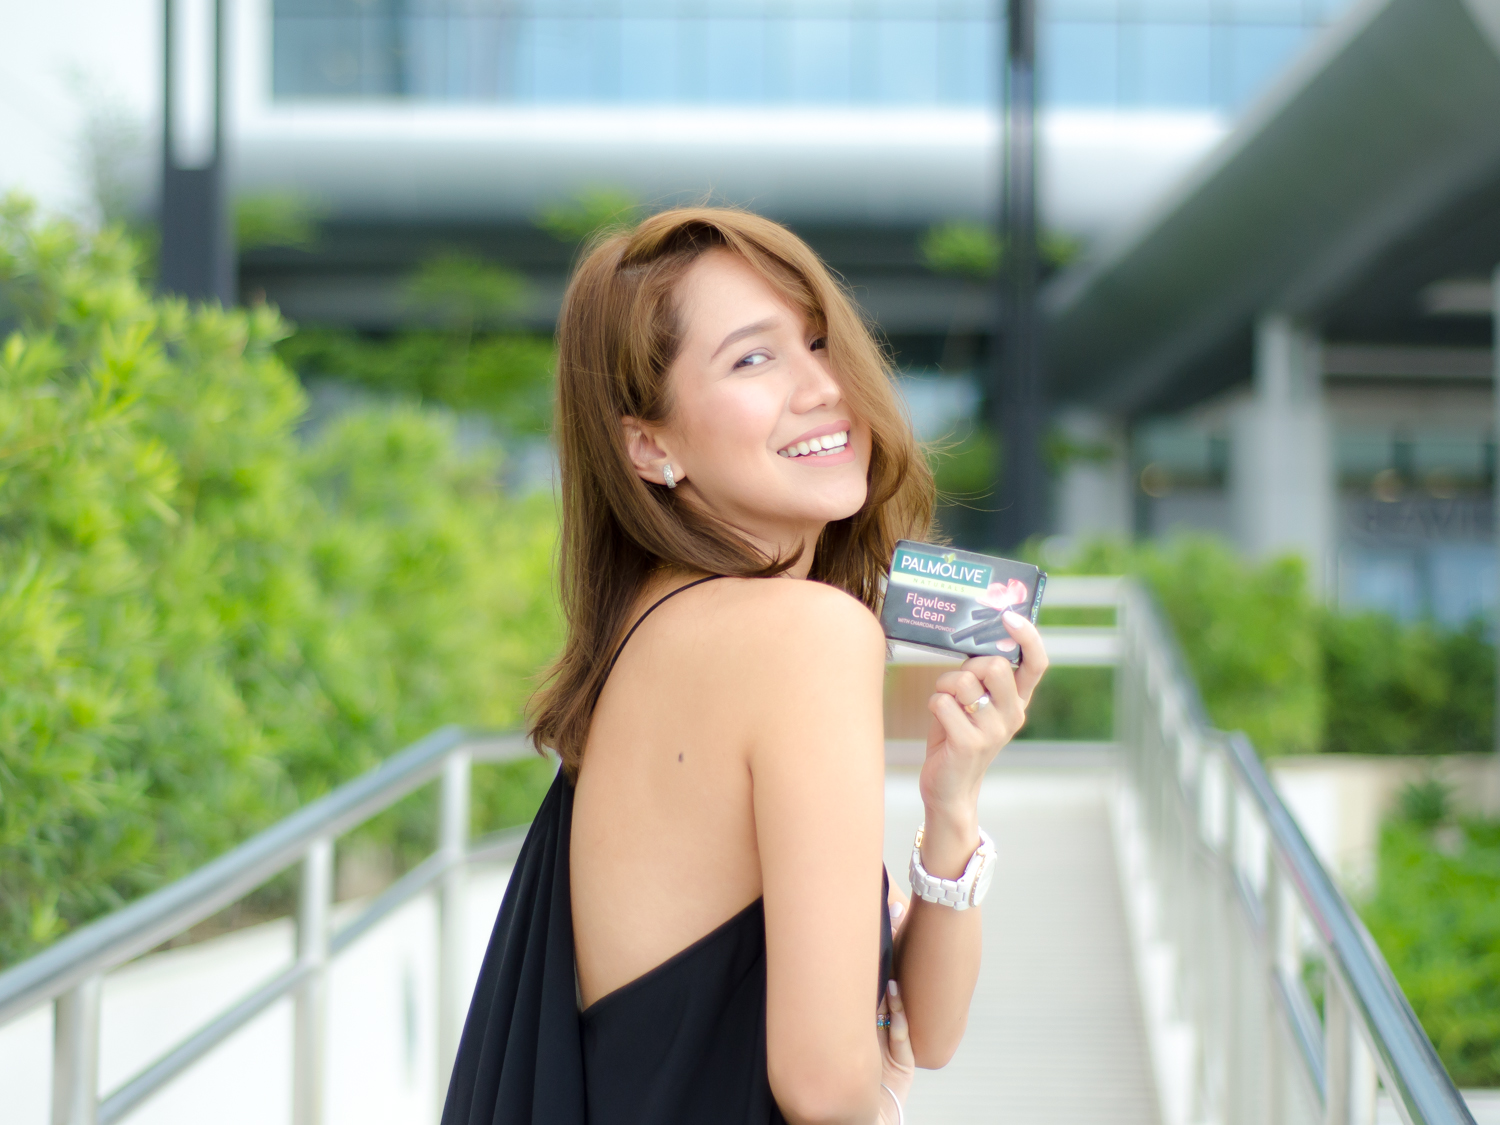 Palmolive Naturals Glowfie, Cebu Fashion Blogger, Cebu Blogger, Cebu Beauty Blogger, Nuffnang Blogger, Social Media Influencer Cebu, Toni Pino-Oca, Asian Blogger, Philippine Blogger